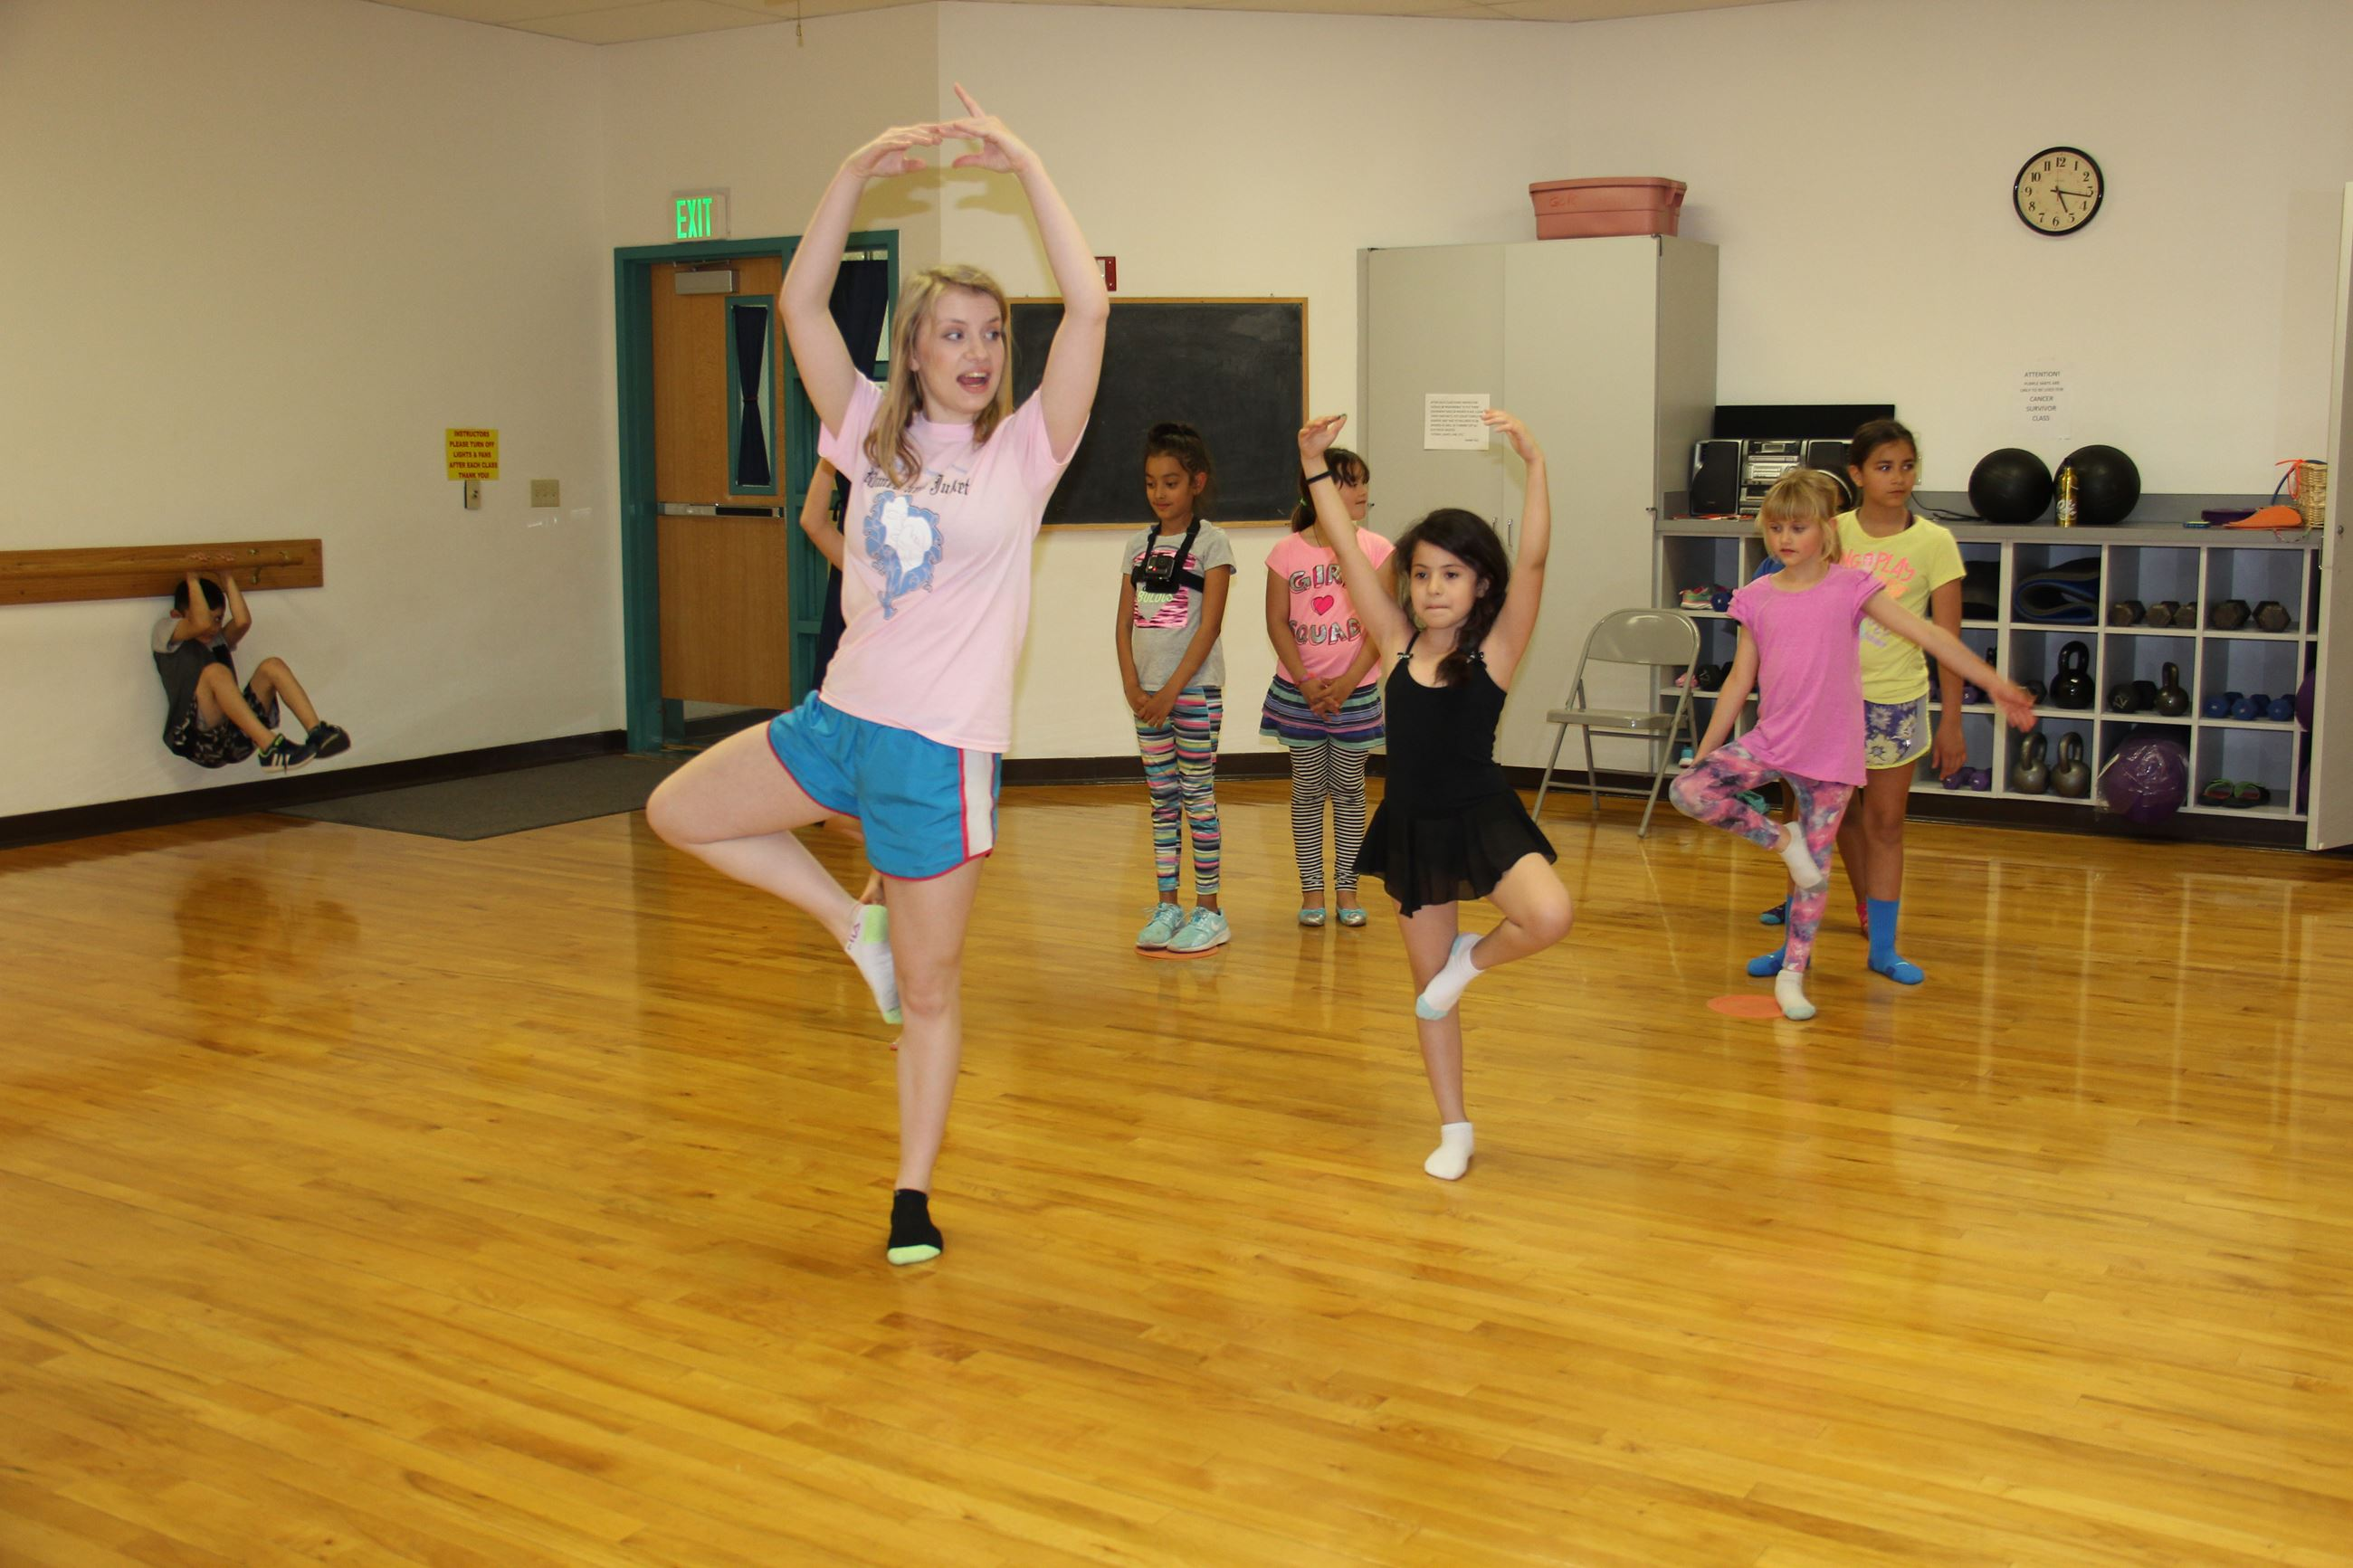 Little girls in youth dance class